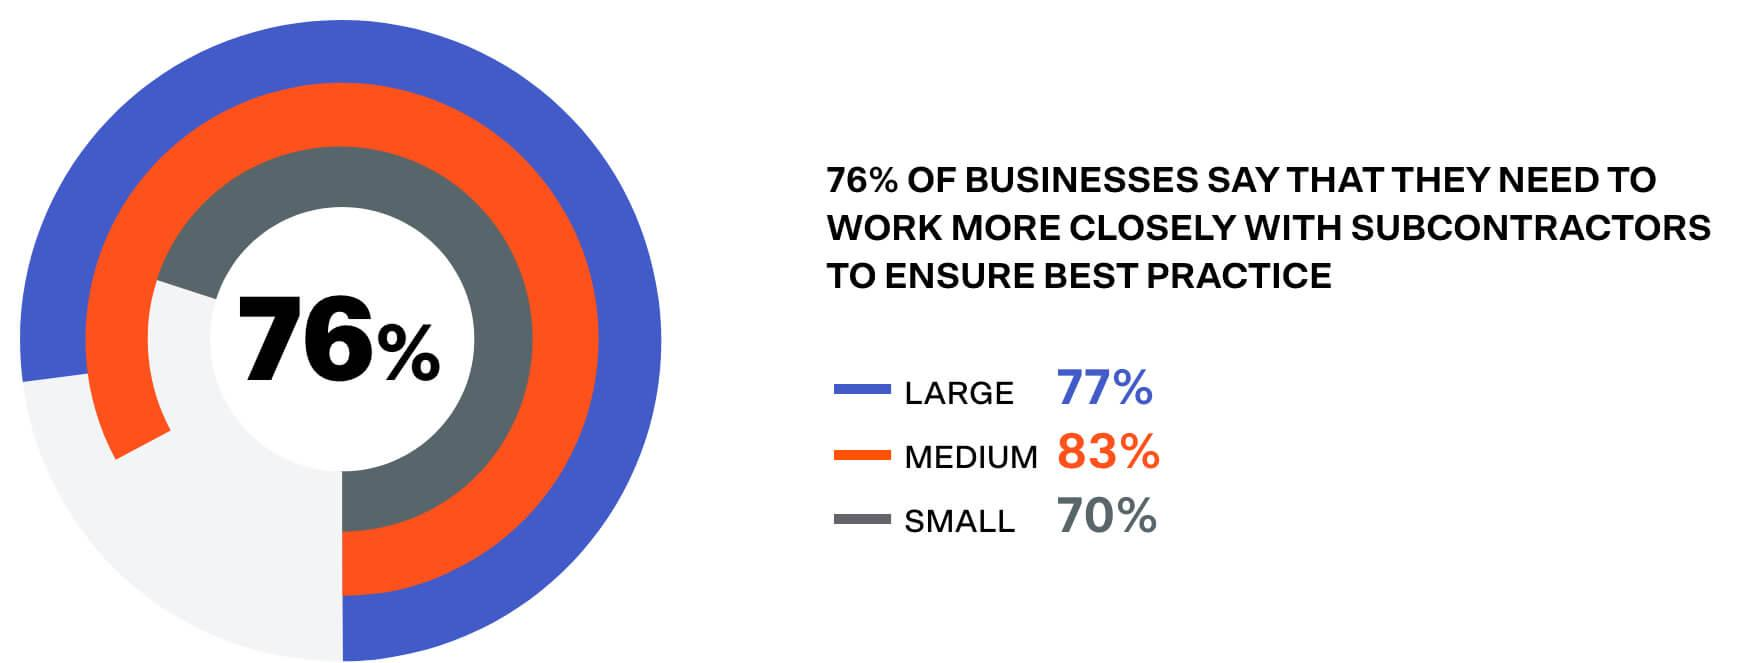 76% of businesses say they need to work with subcontractors more closely to ensure best practice.